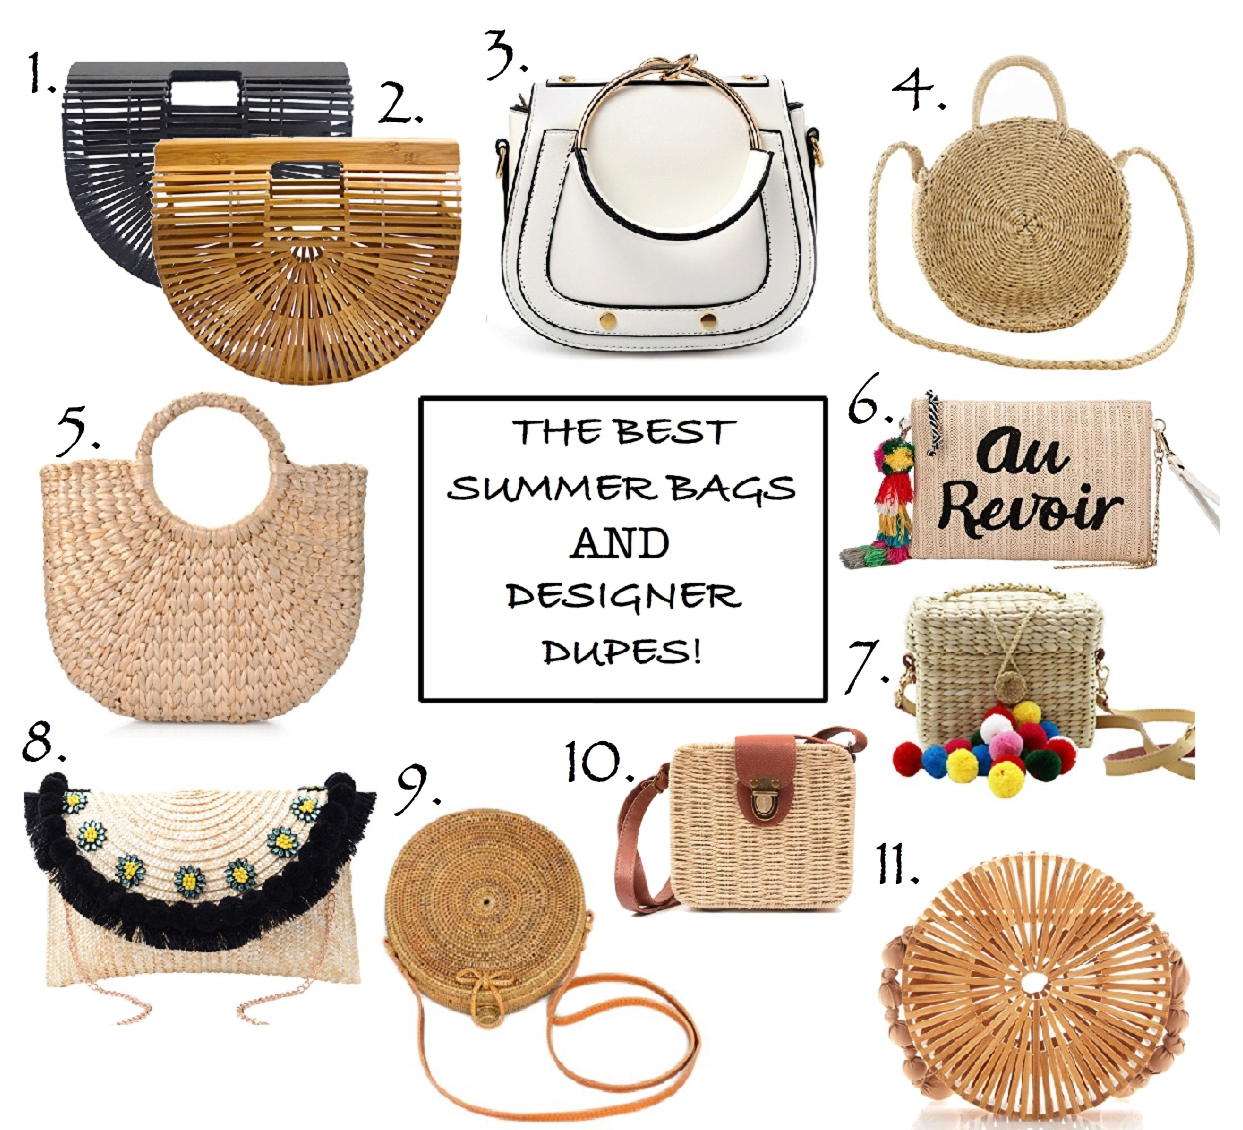 must have spring bags and designer dupes of summer 2018, cult gaia dupe, woven bags, basket bags, summer 2018 handbag trends